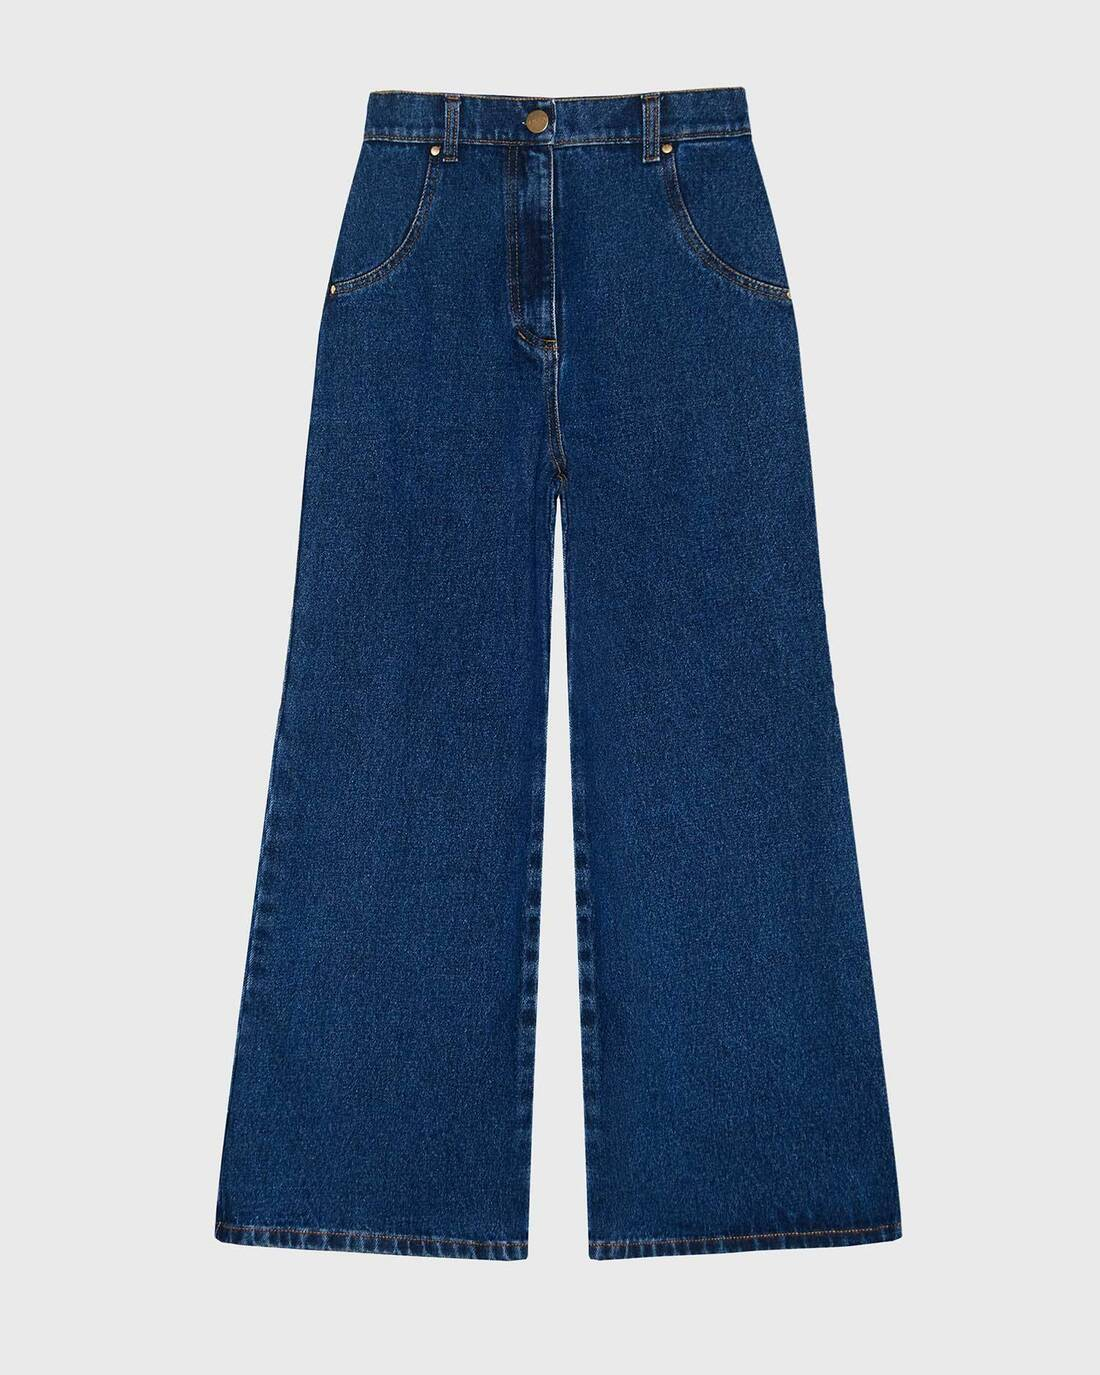 Boot cut dark wash denim jeans